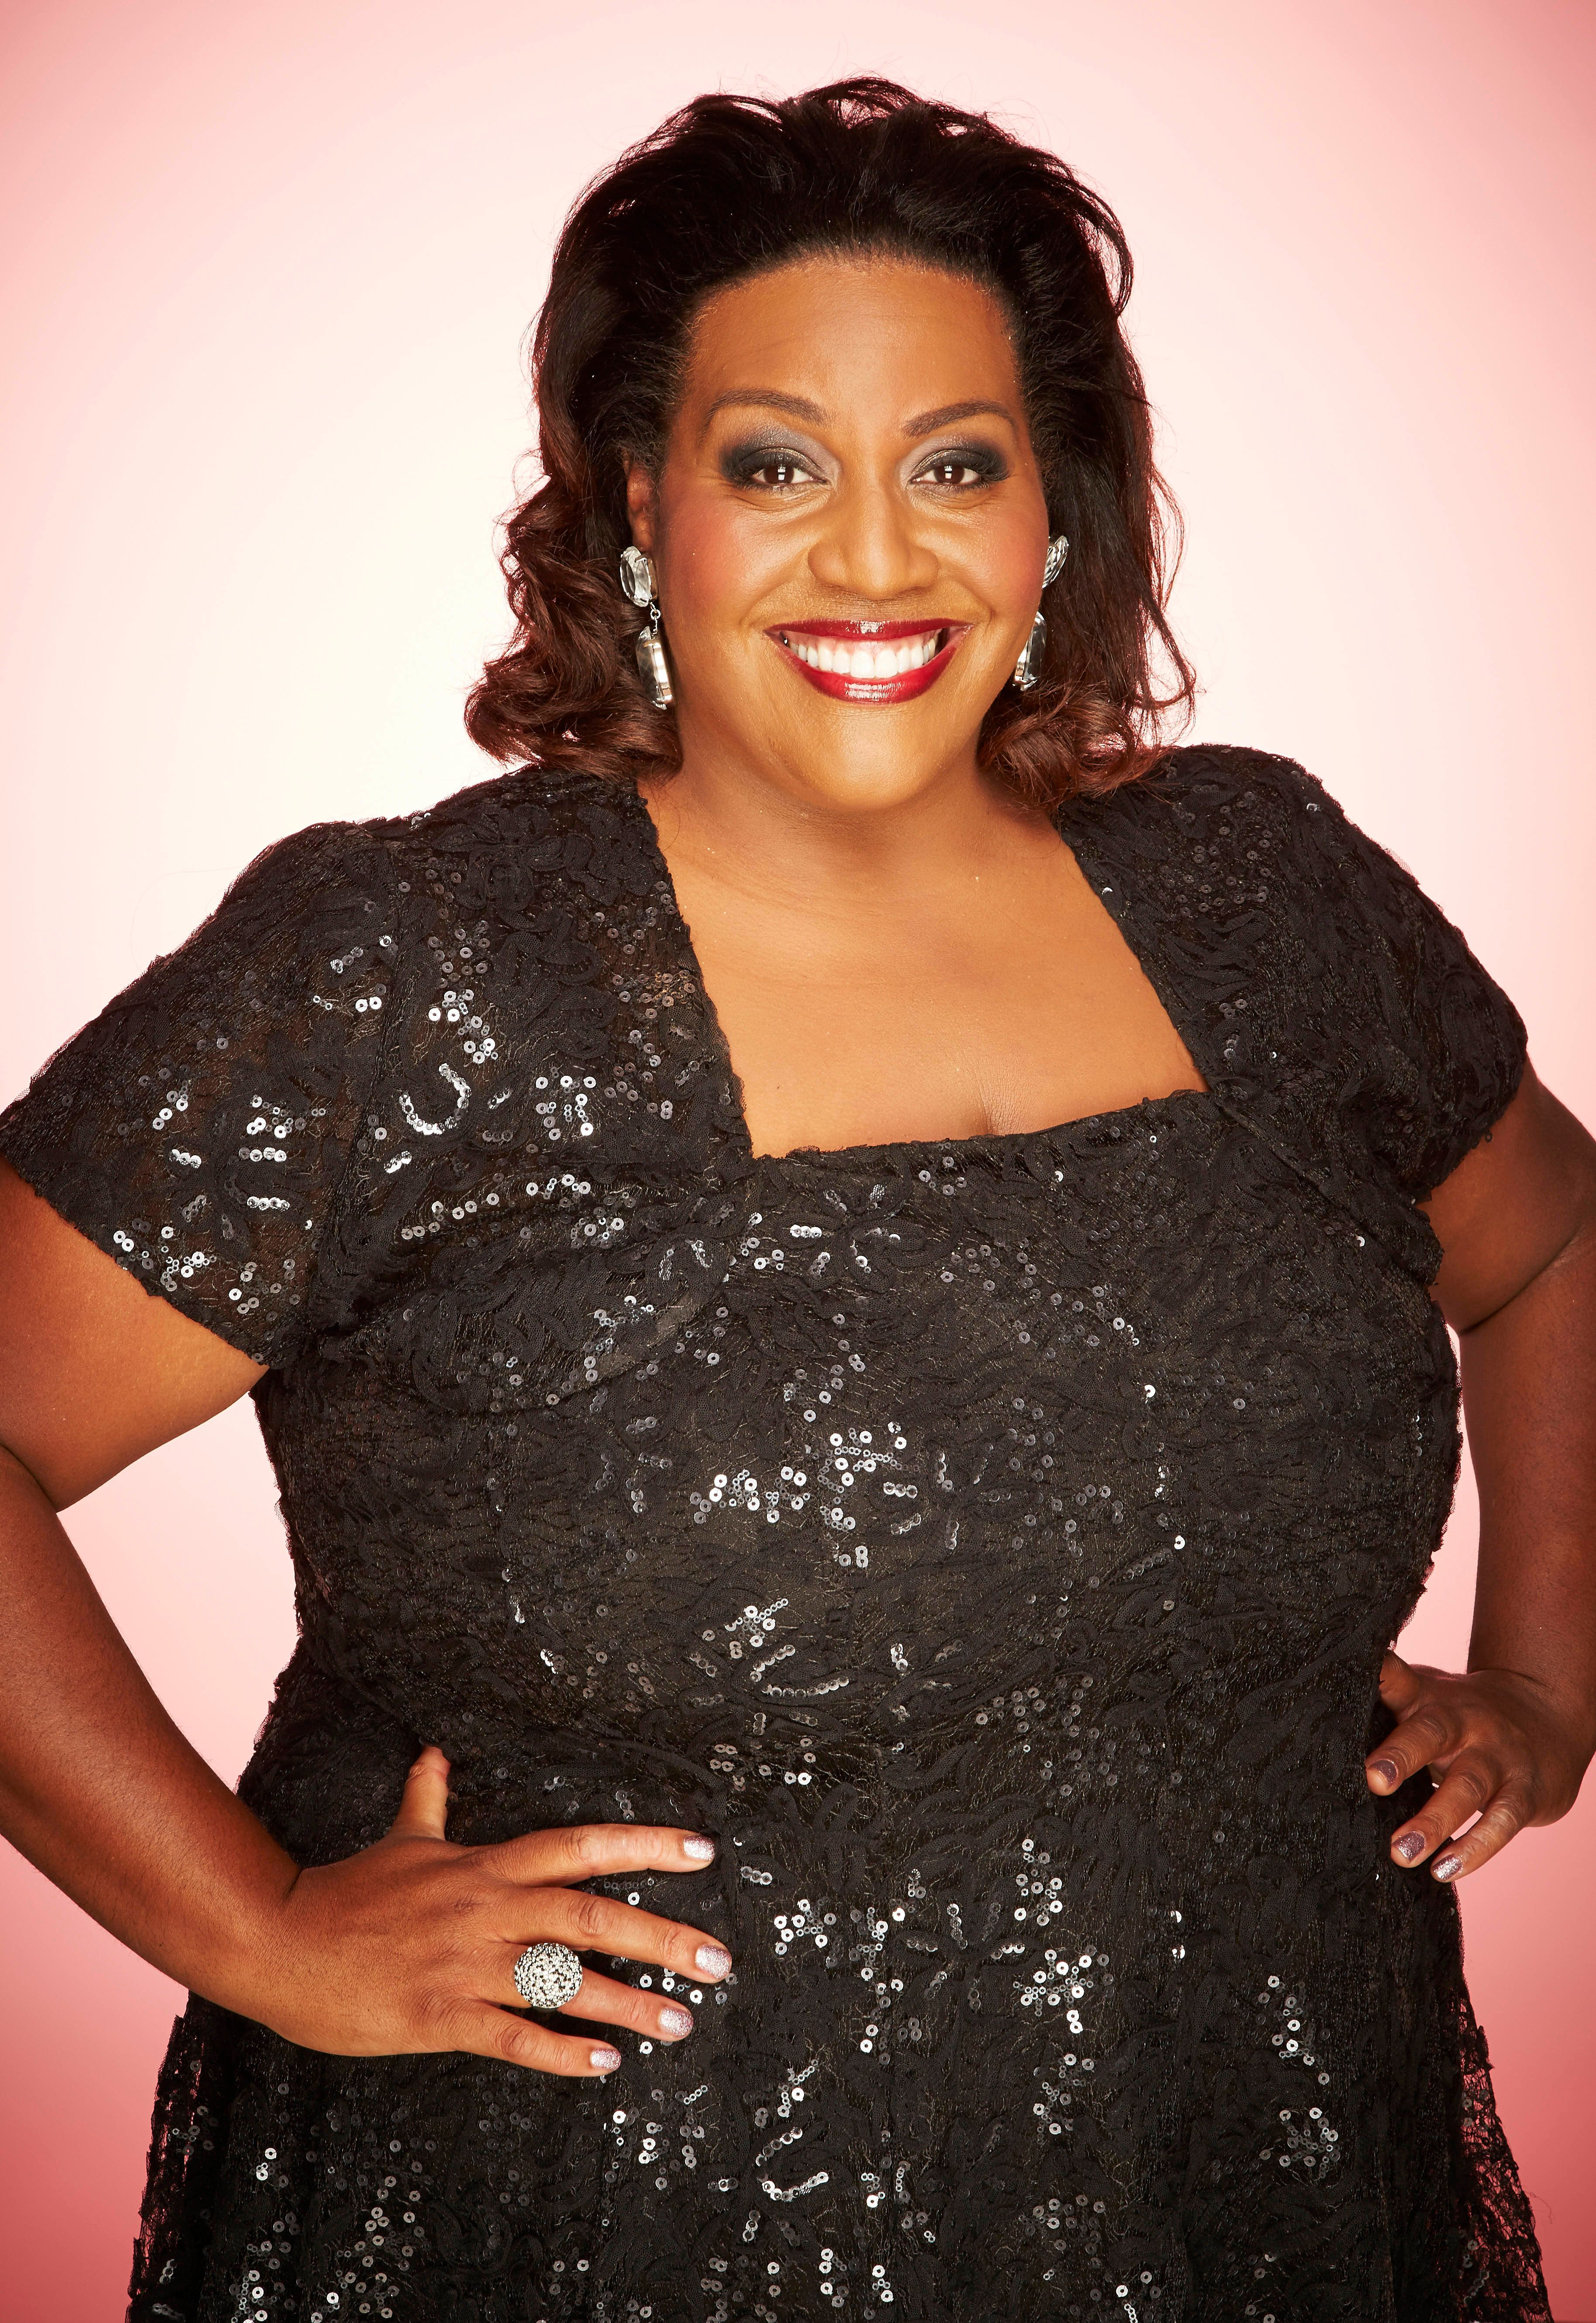 <strong>Alison Hammond has been part of the 'This Morning' family since 2002</strong>